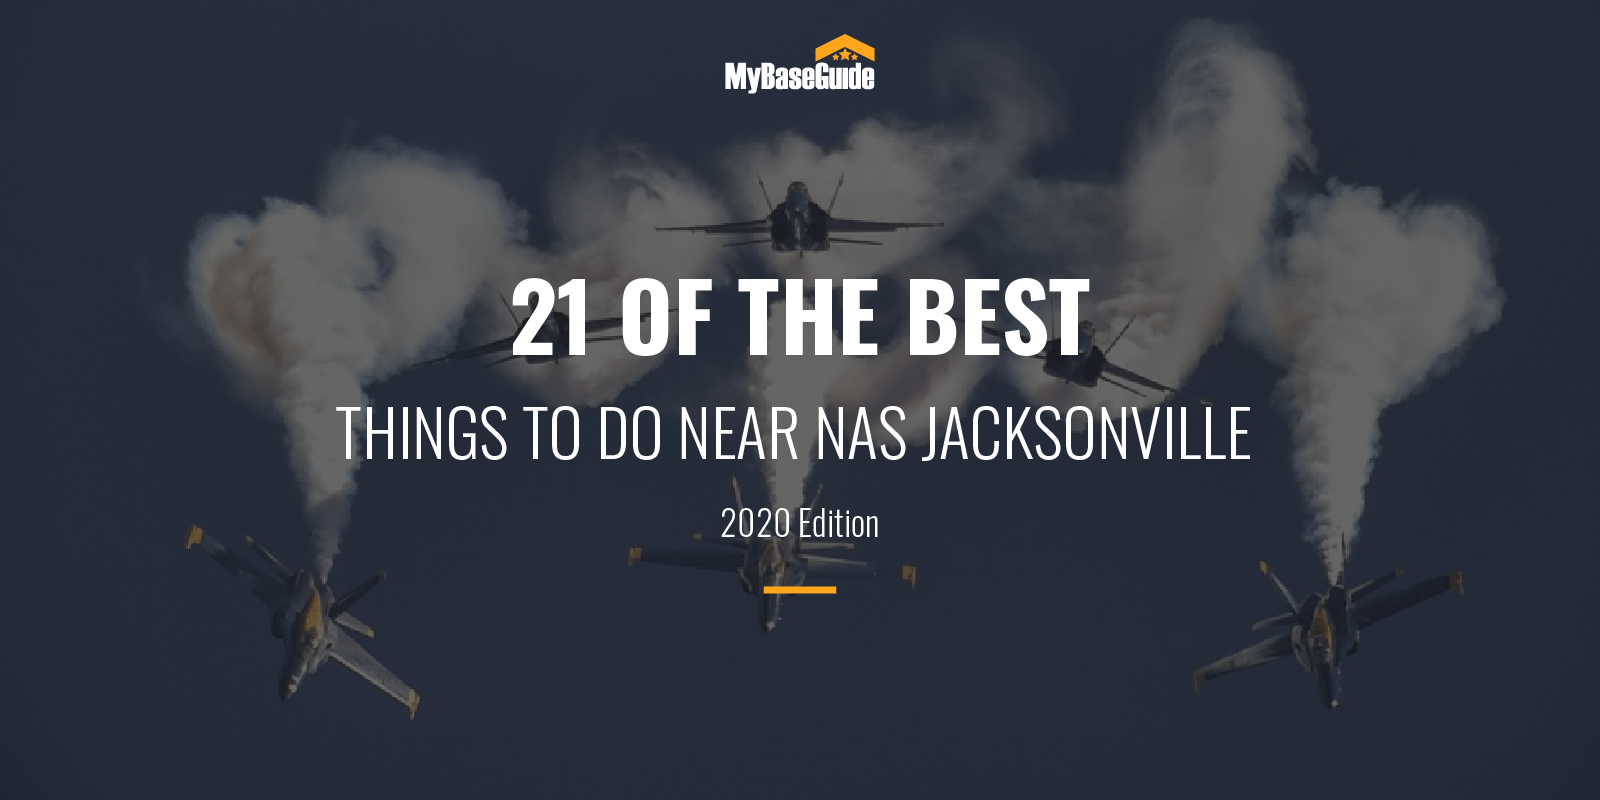 21 Of the Best Things to Do Near NAS Jacksonville